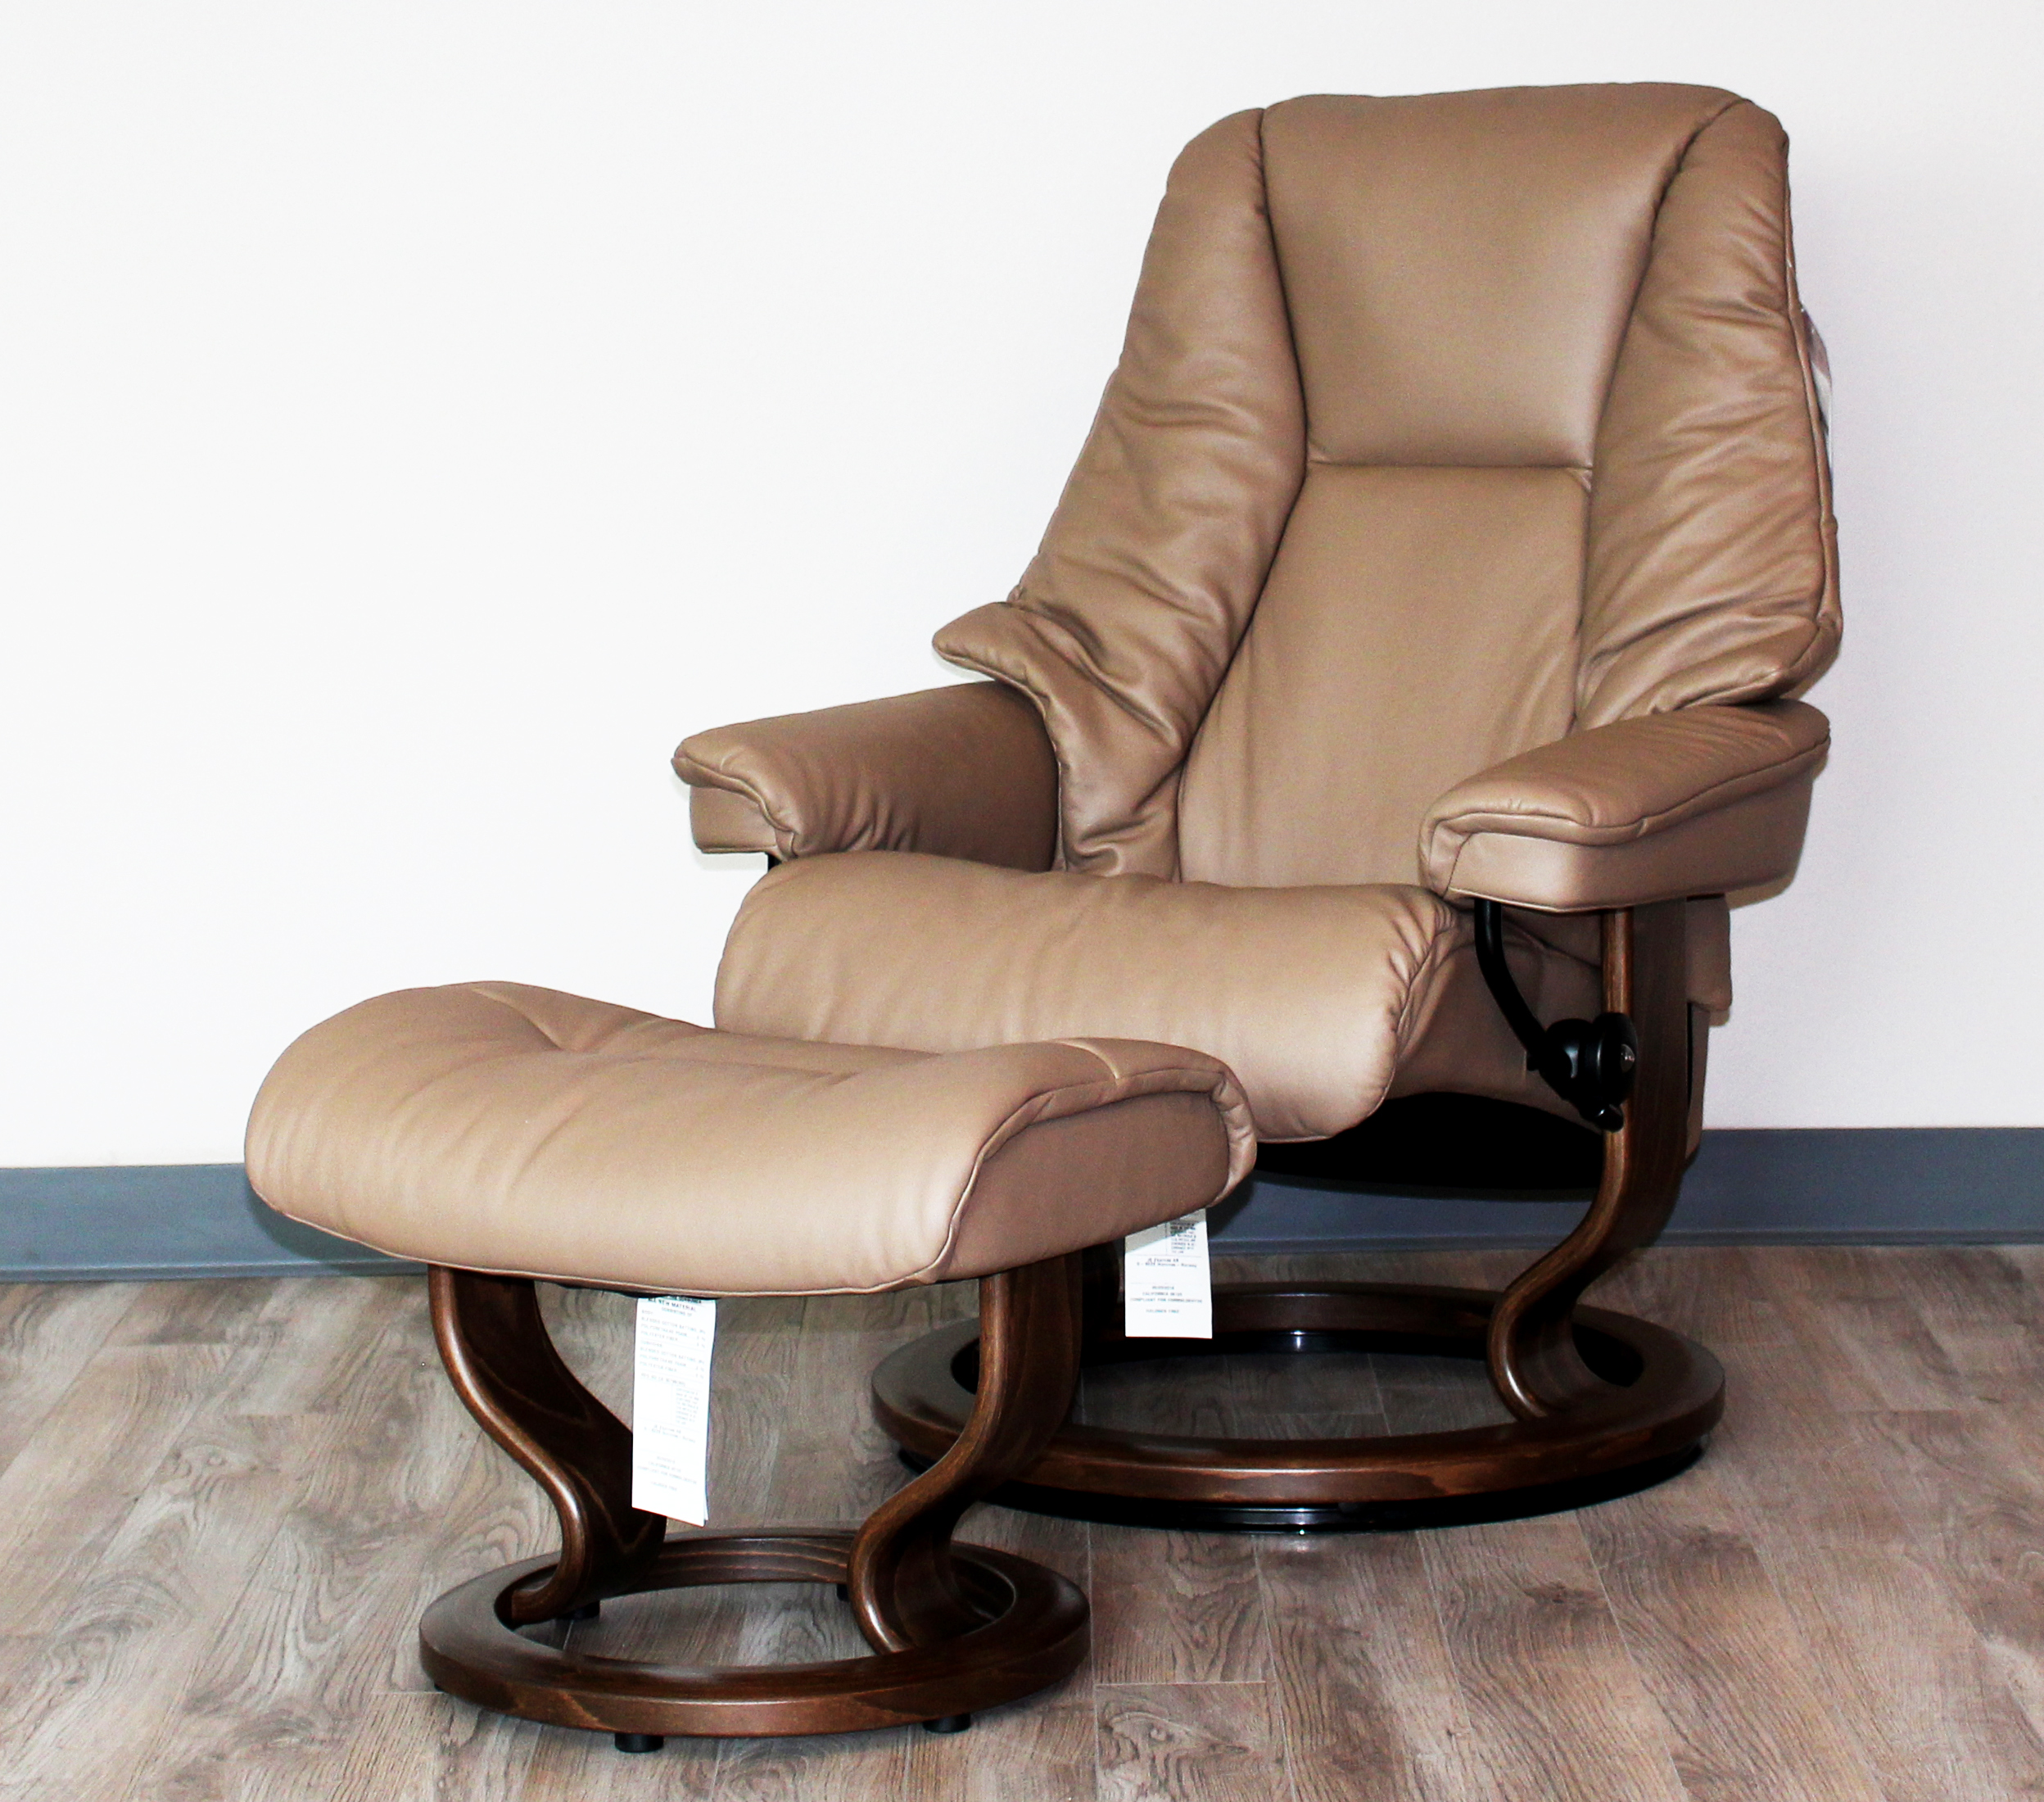 Ekornes Stressless Live Recliner Chair Lounger And Ottoman Ekornes Stressless Live Recliners